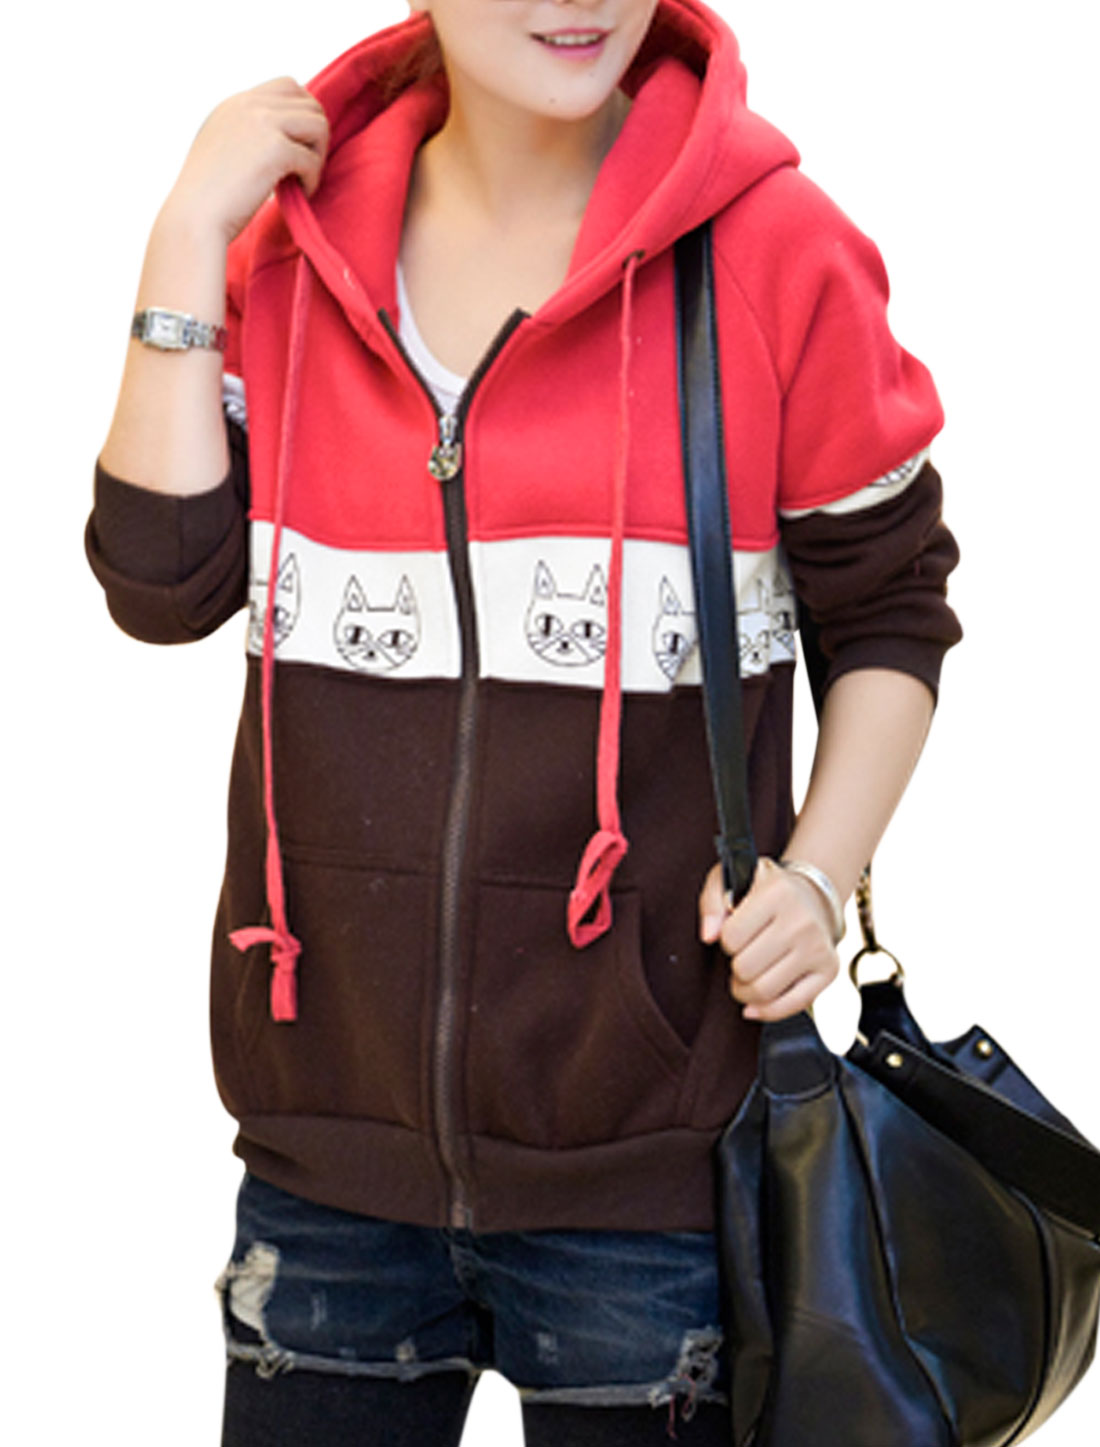 Lady Animal Pattern Contrast Color Hooded Fashion Sweatshirt Red Brown M